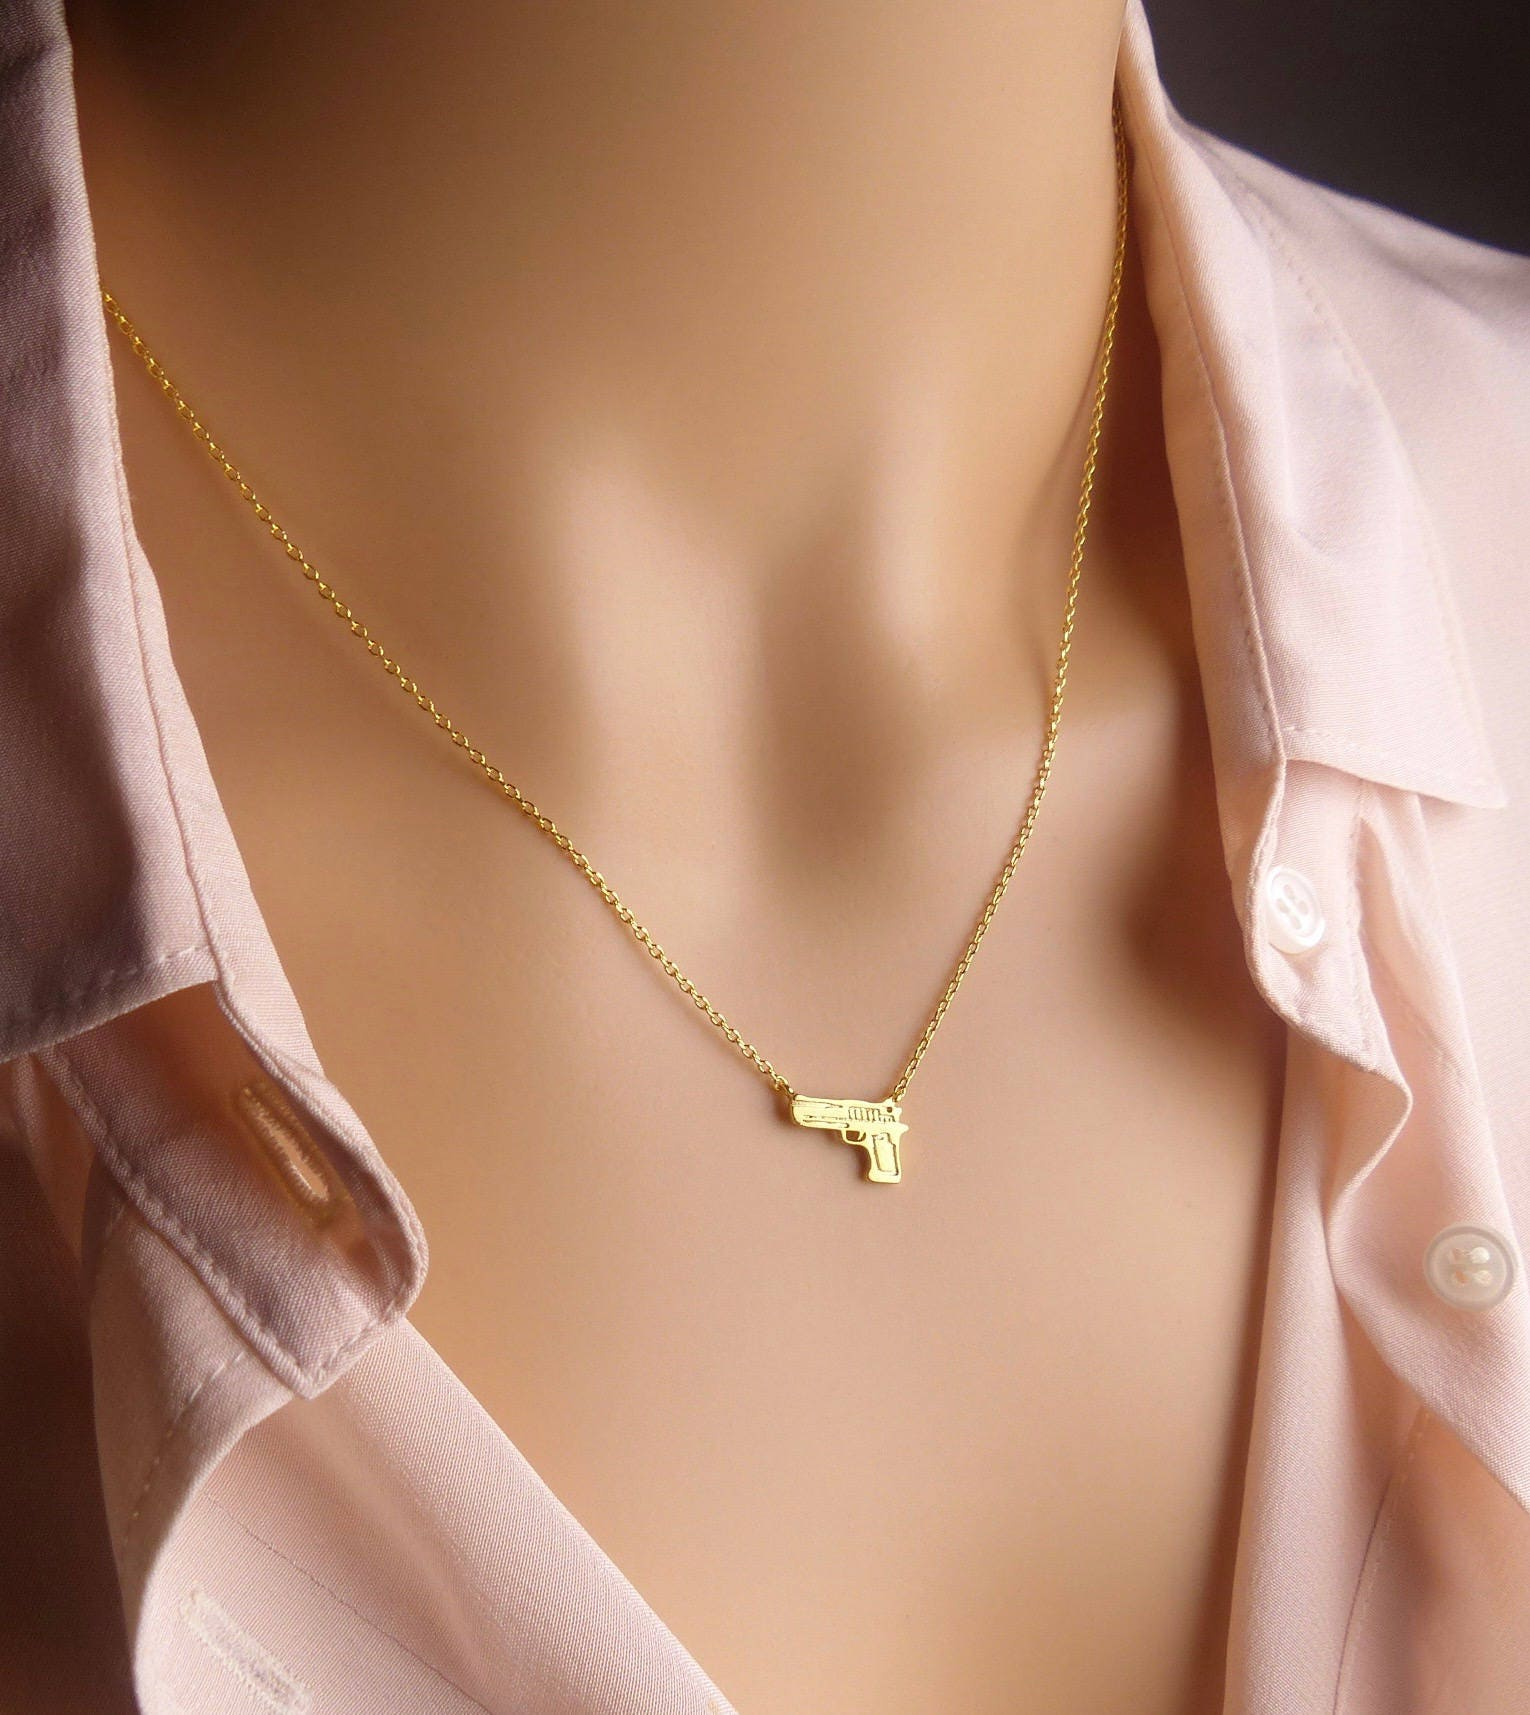 Bridesmaids Gift Gold Tiny Bullet Necklace Choker Second Amendment Ammo Gun Dainty Minimalist Jewelry Charm Gift for her Snake Chain